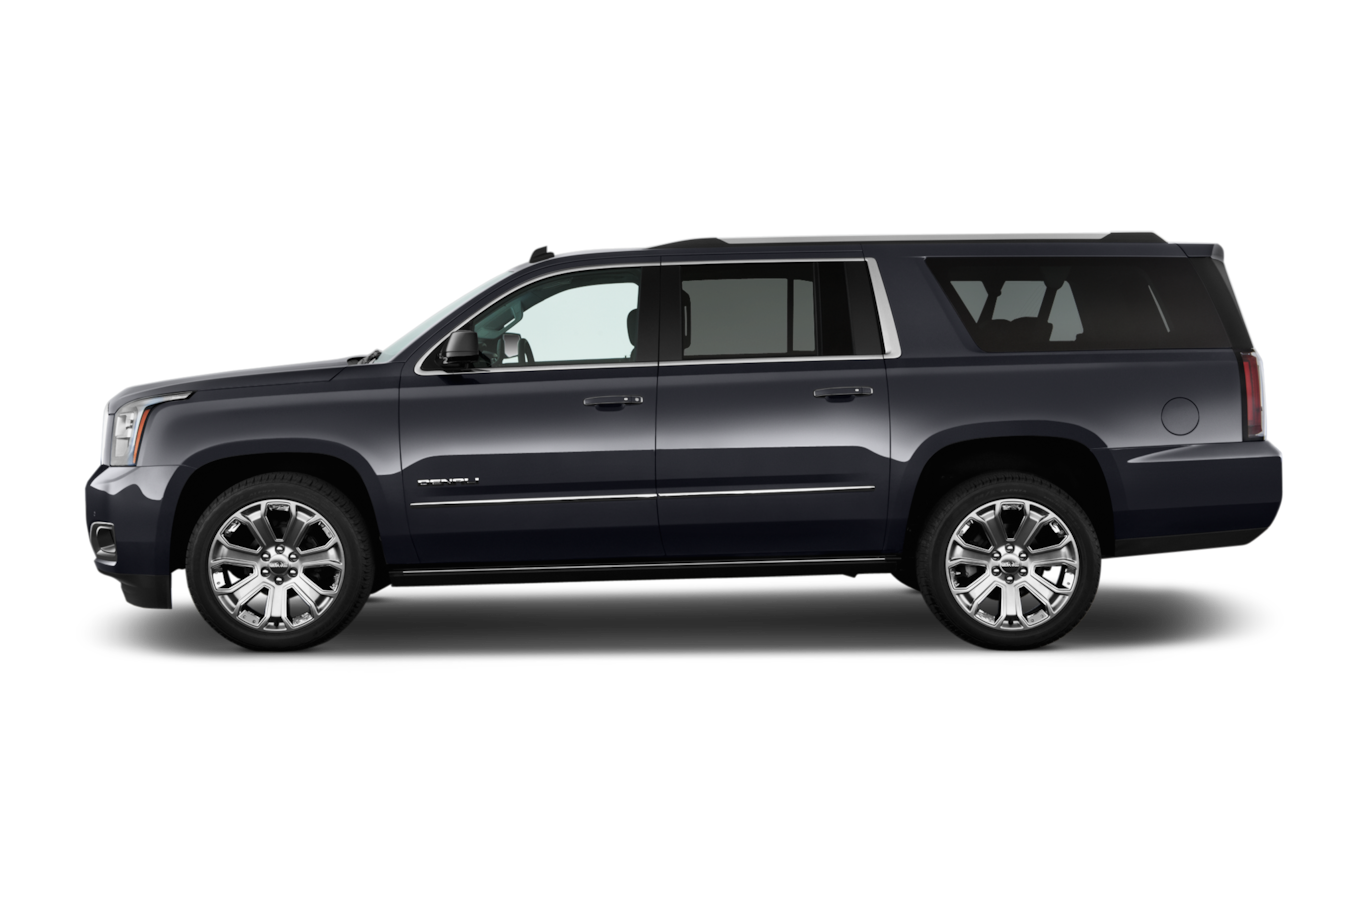 2014 gmc yukon xl review